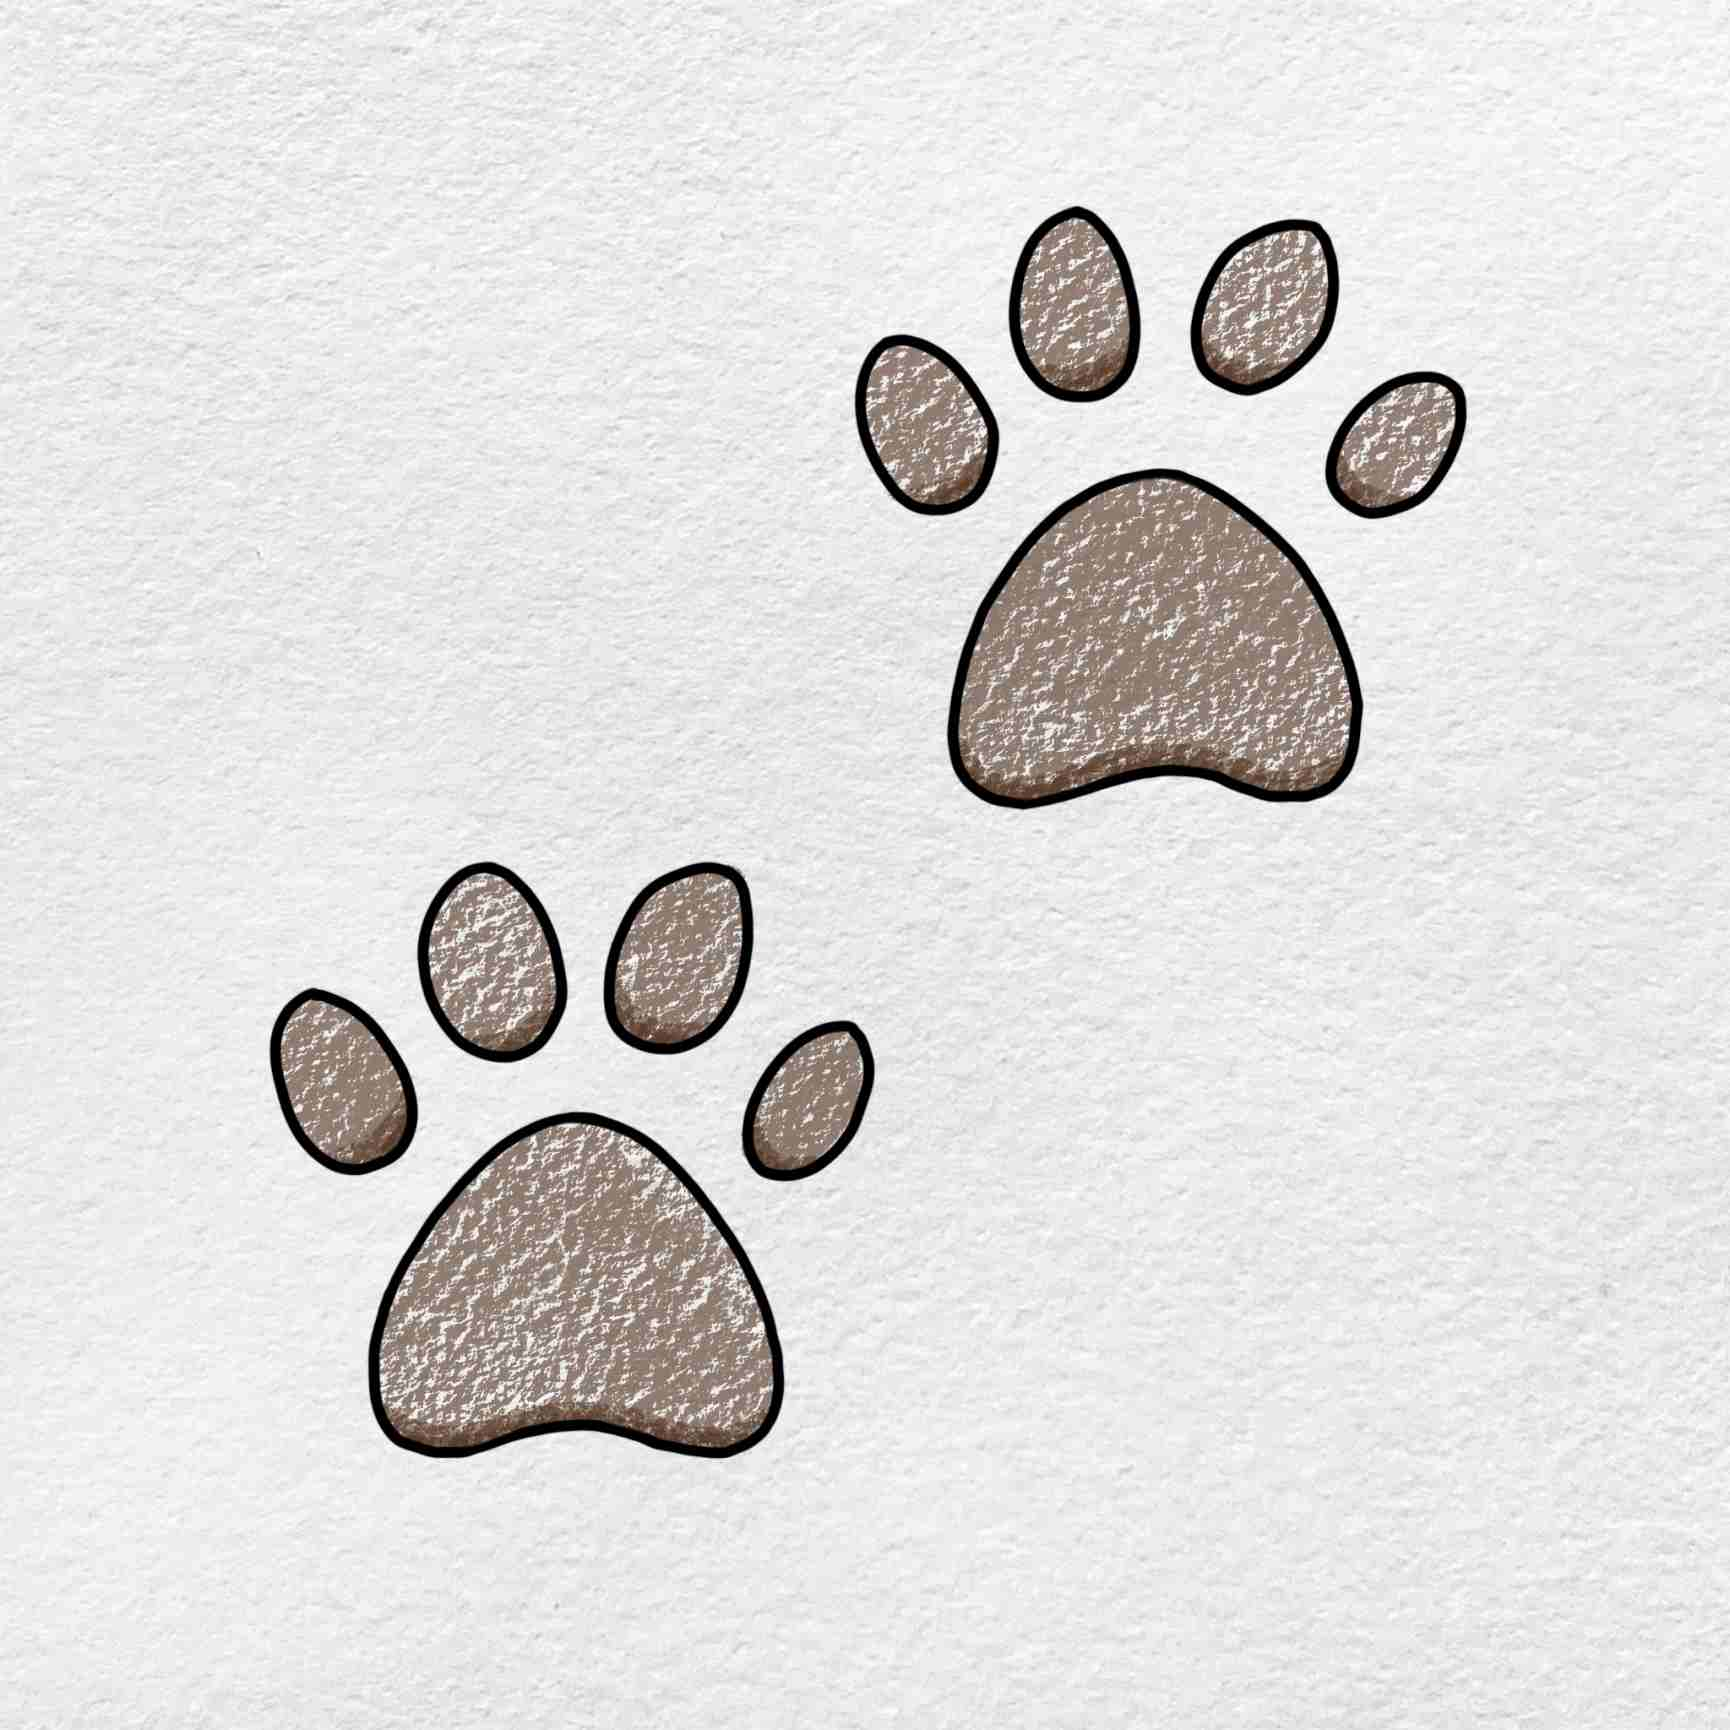 How To Draw A Paw Print: Step 6